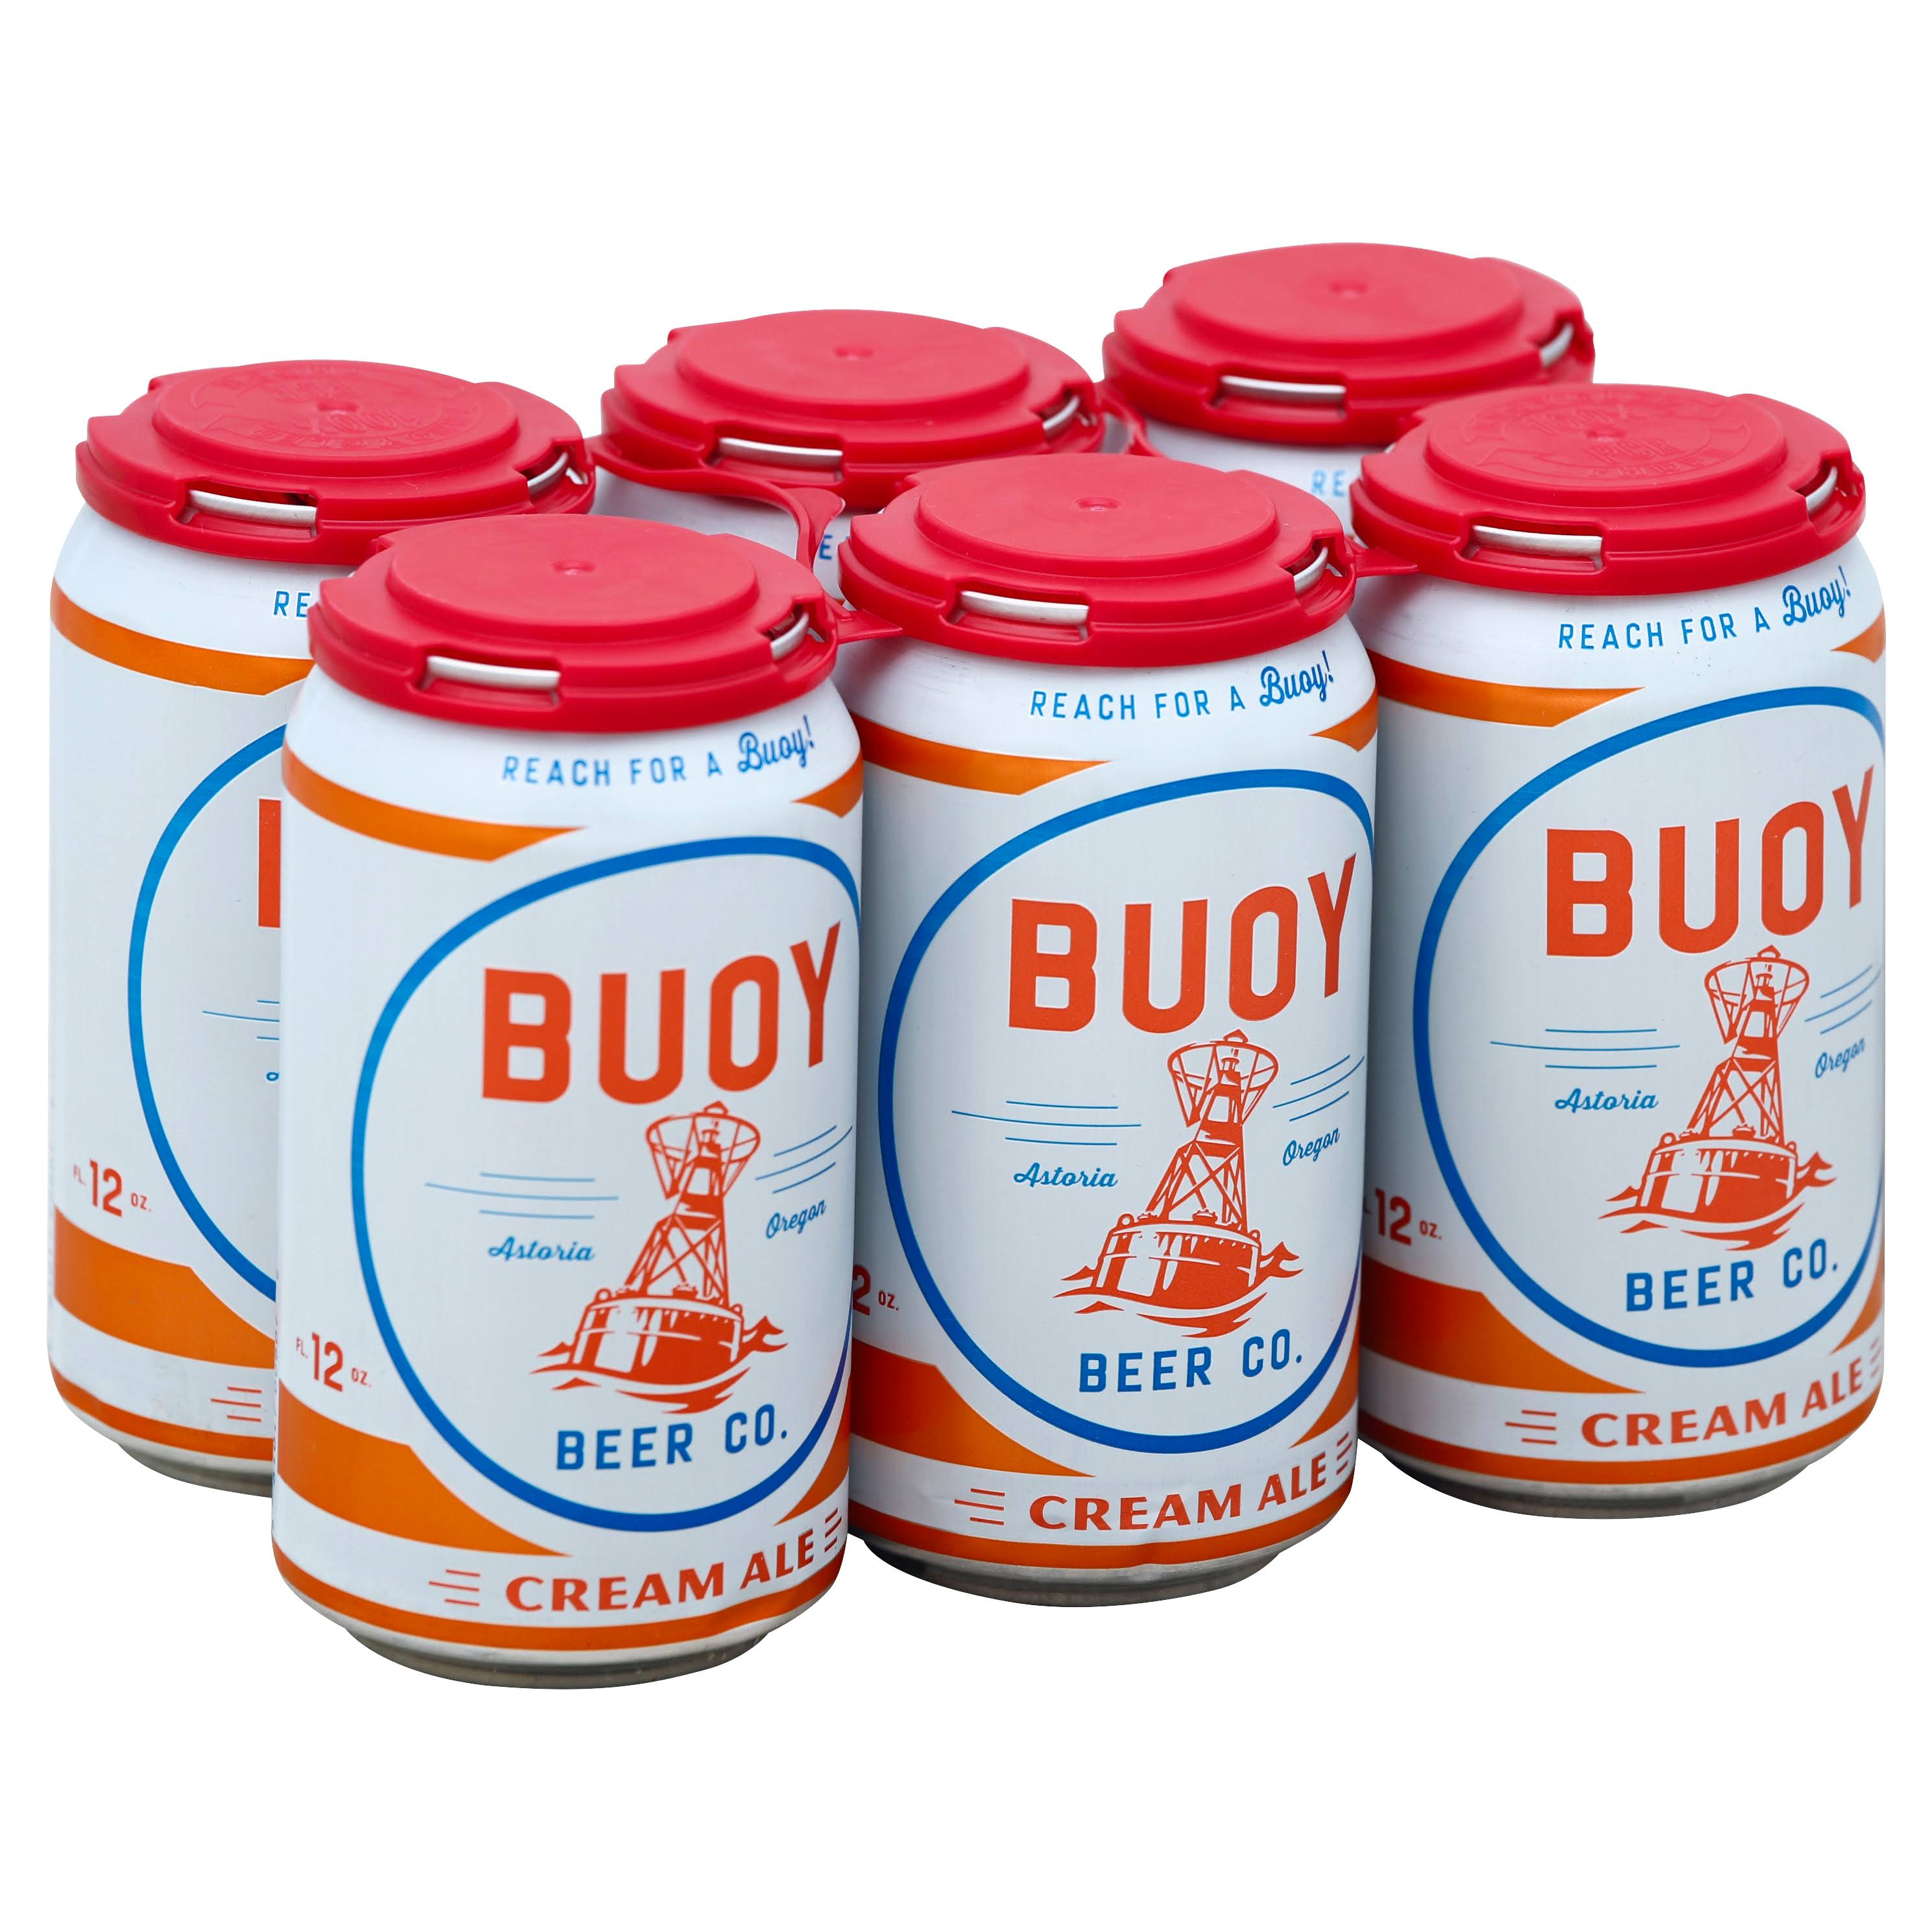 Buoy Beer, Cream Ale - 6 pack, 12 fl oz cans